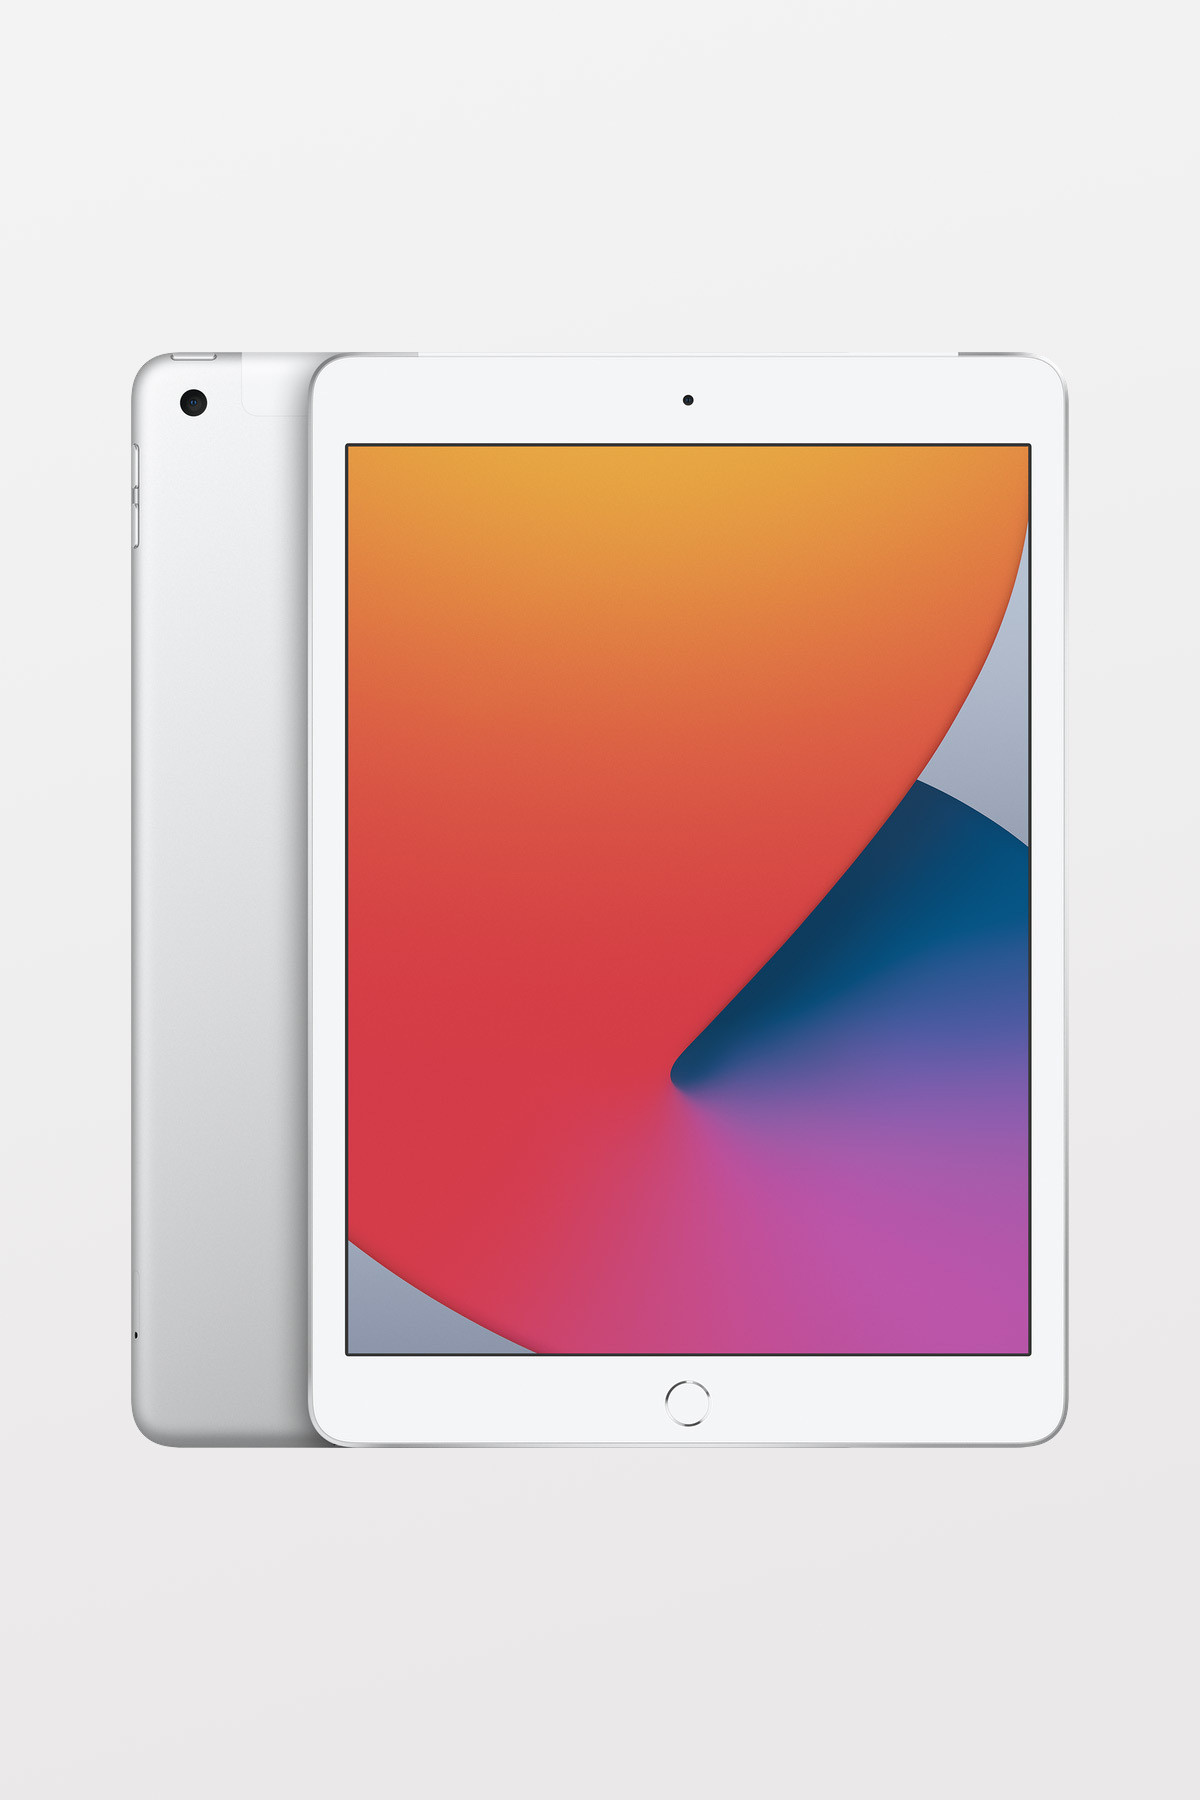 iPad (8th Gen) 10.2-inch Wi-Fi + Cellular 32GB — Silver